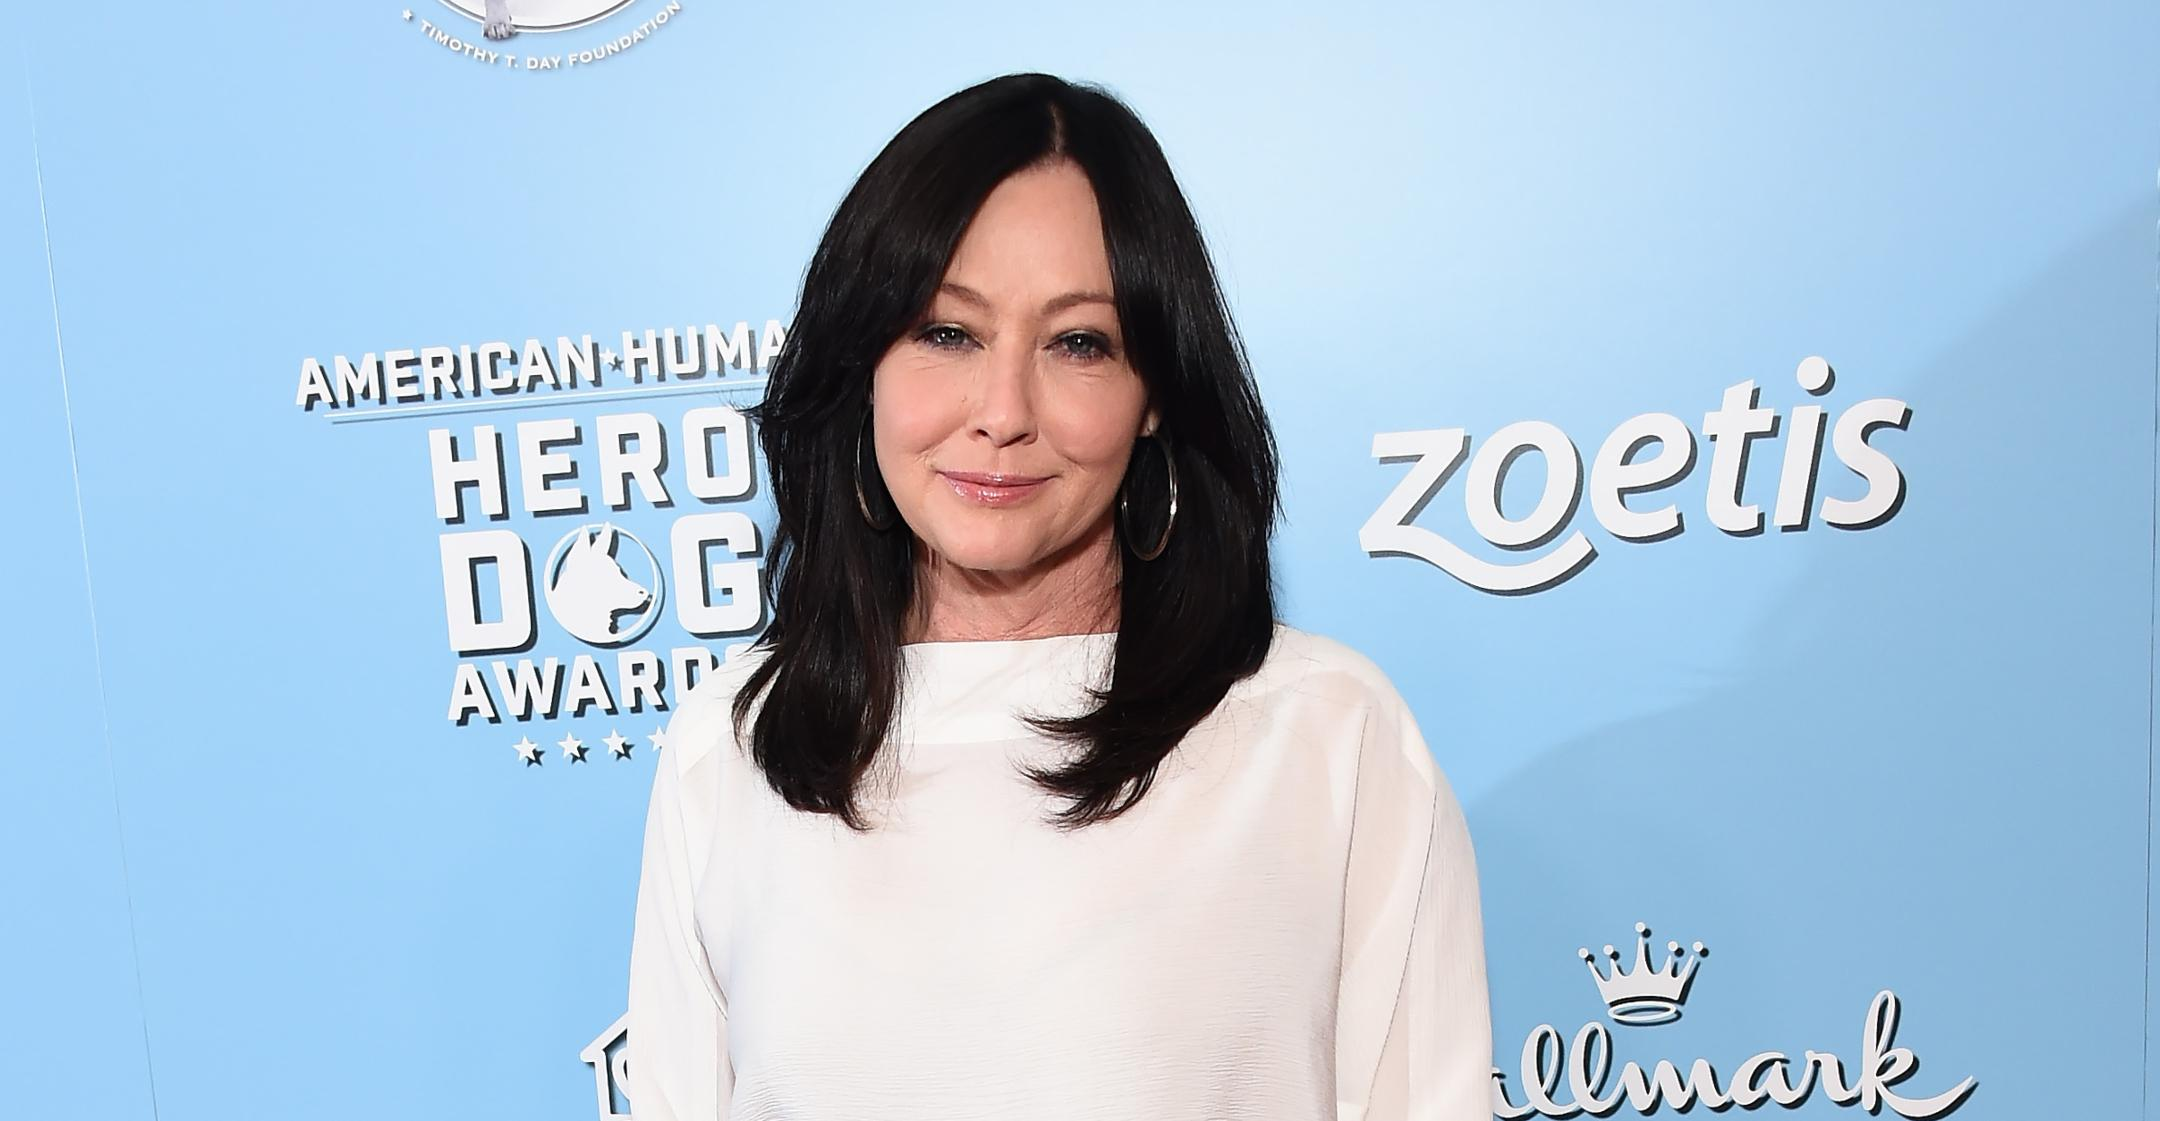 shannen doherty encourages women to ditch botox embrace their natural face